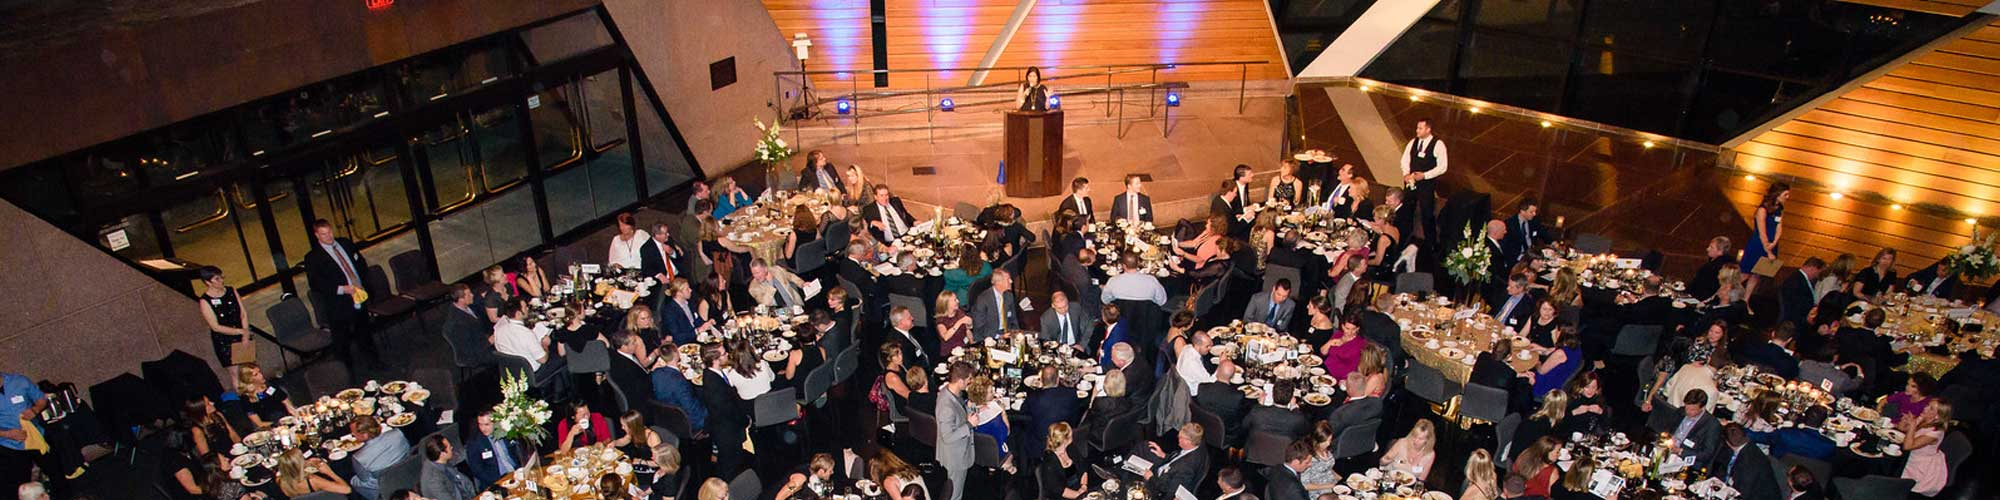 event held at McNamara Alumni Center